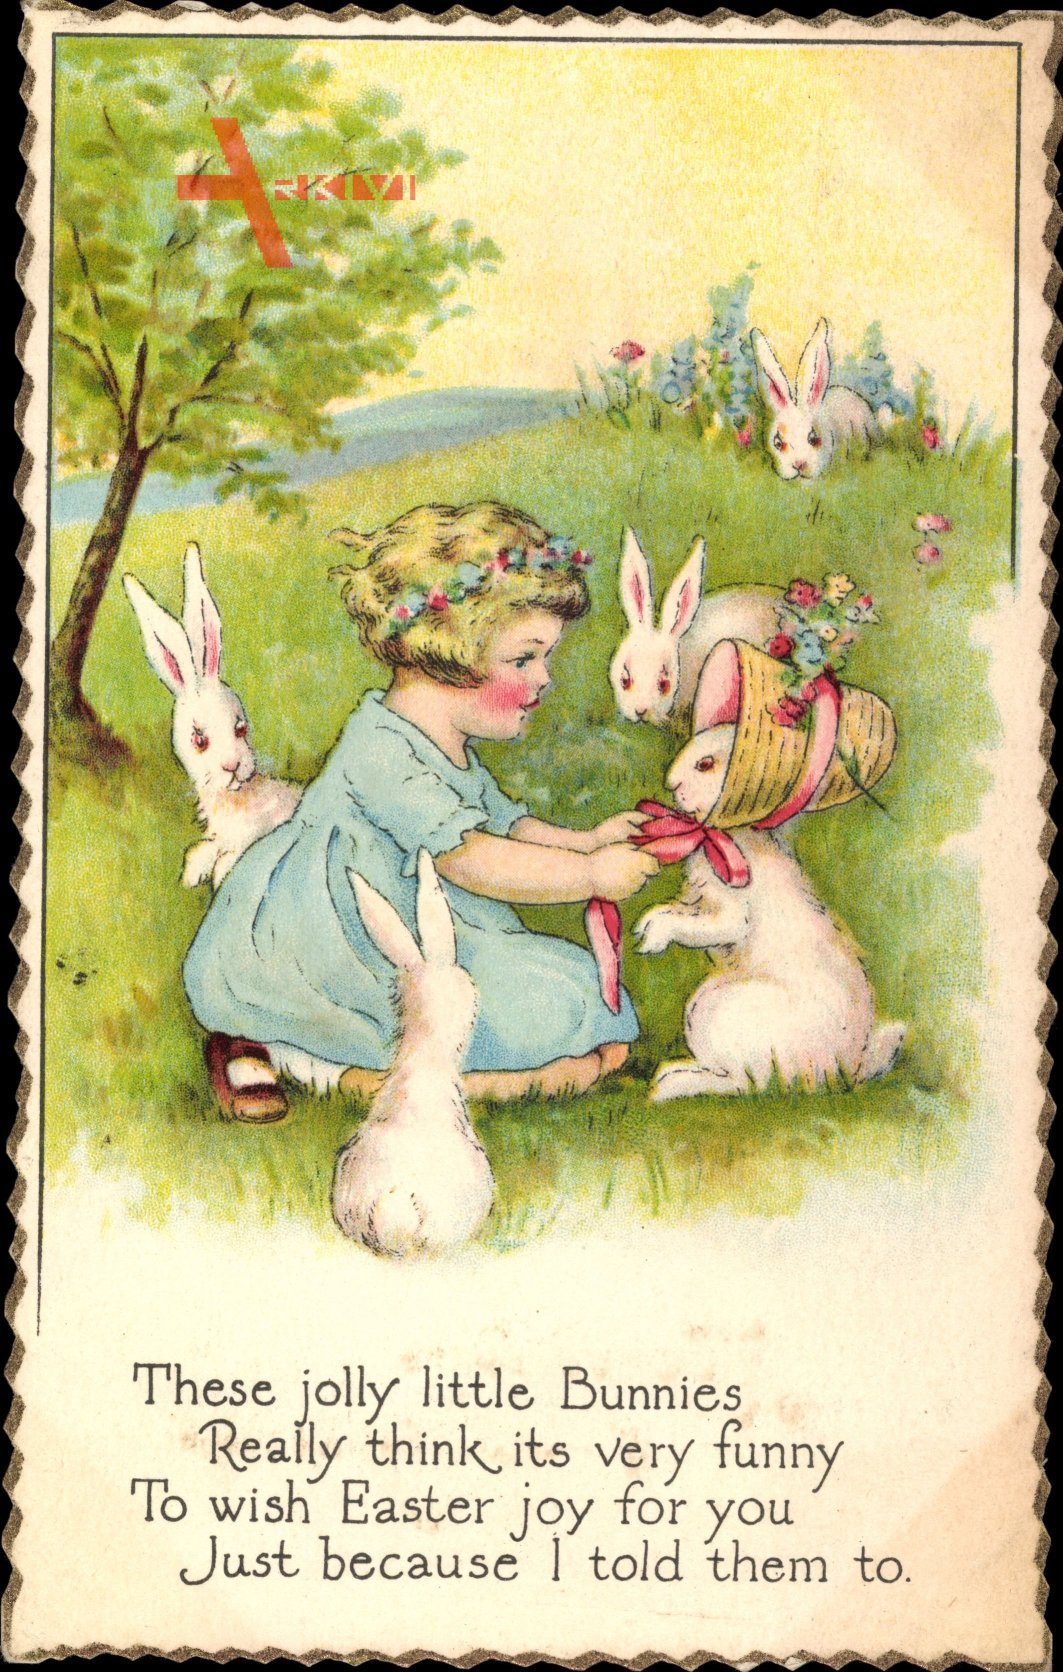 Glückwunsch Ostern, These jolly little Bunnies really think its very funny